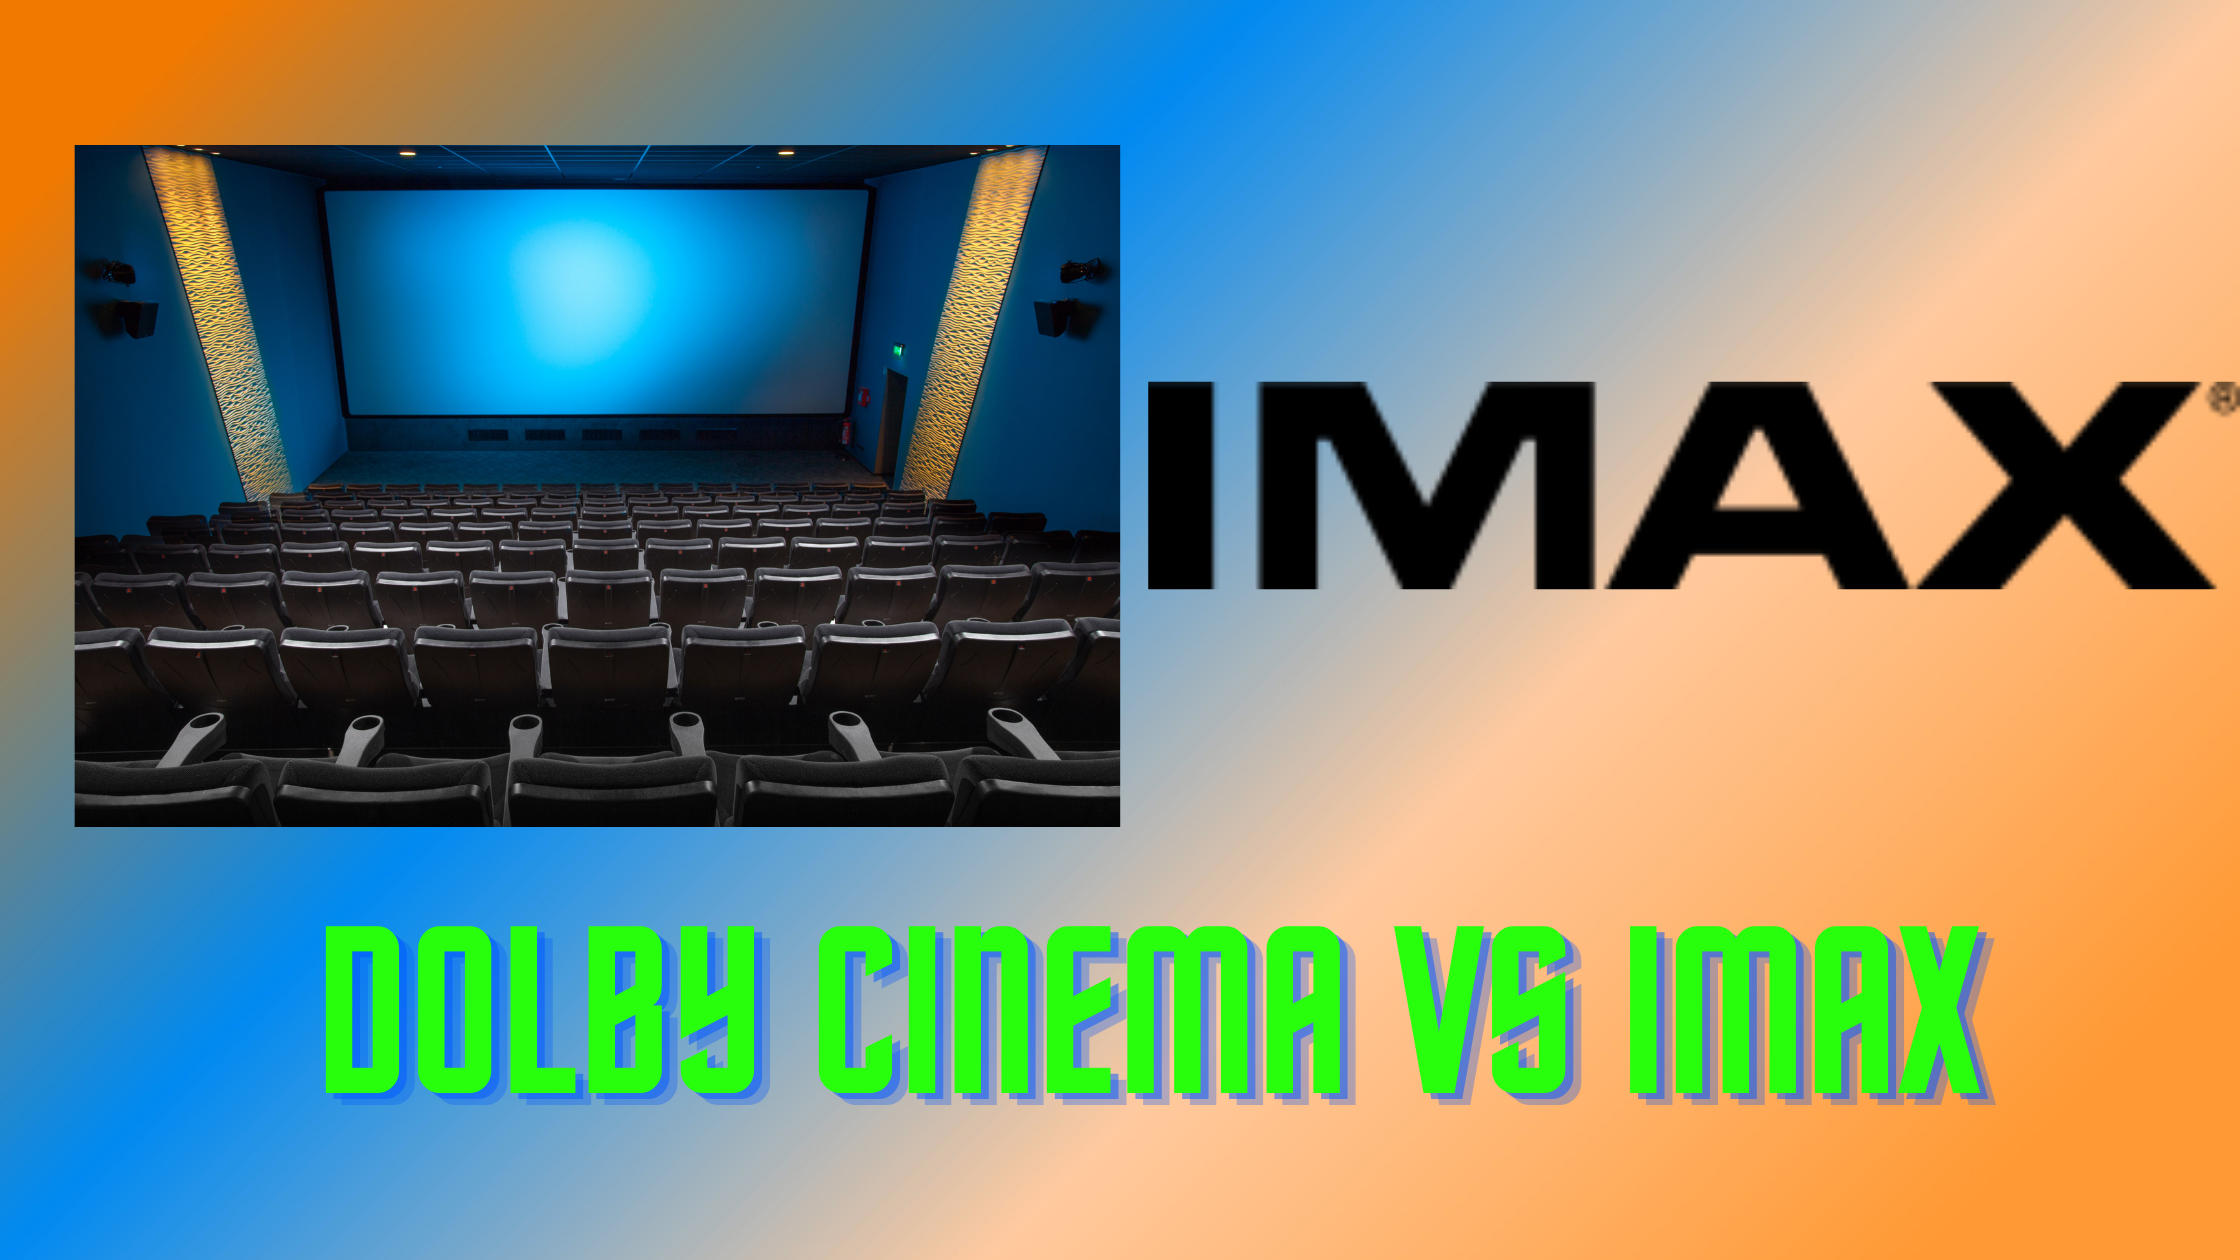 Dolby Cinema vs IMAX